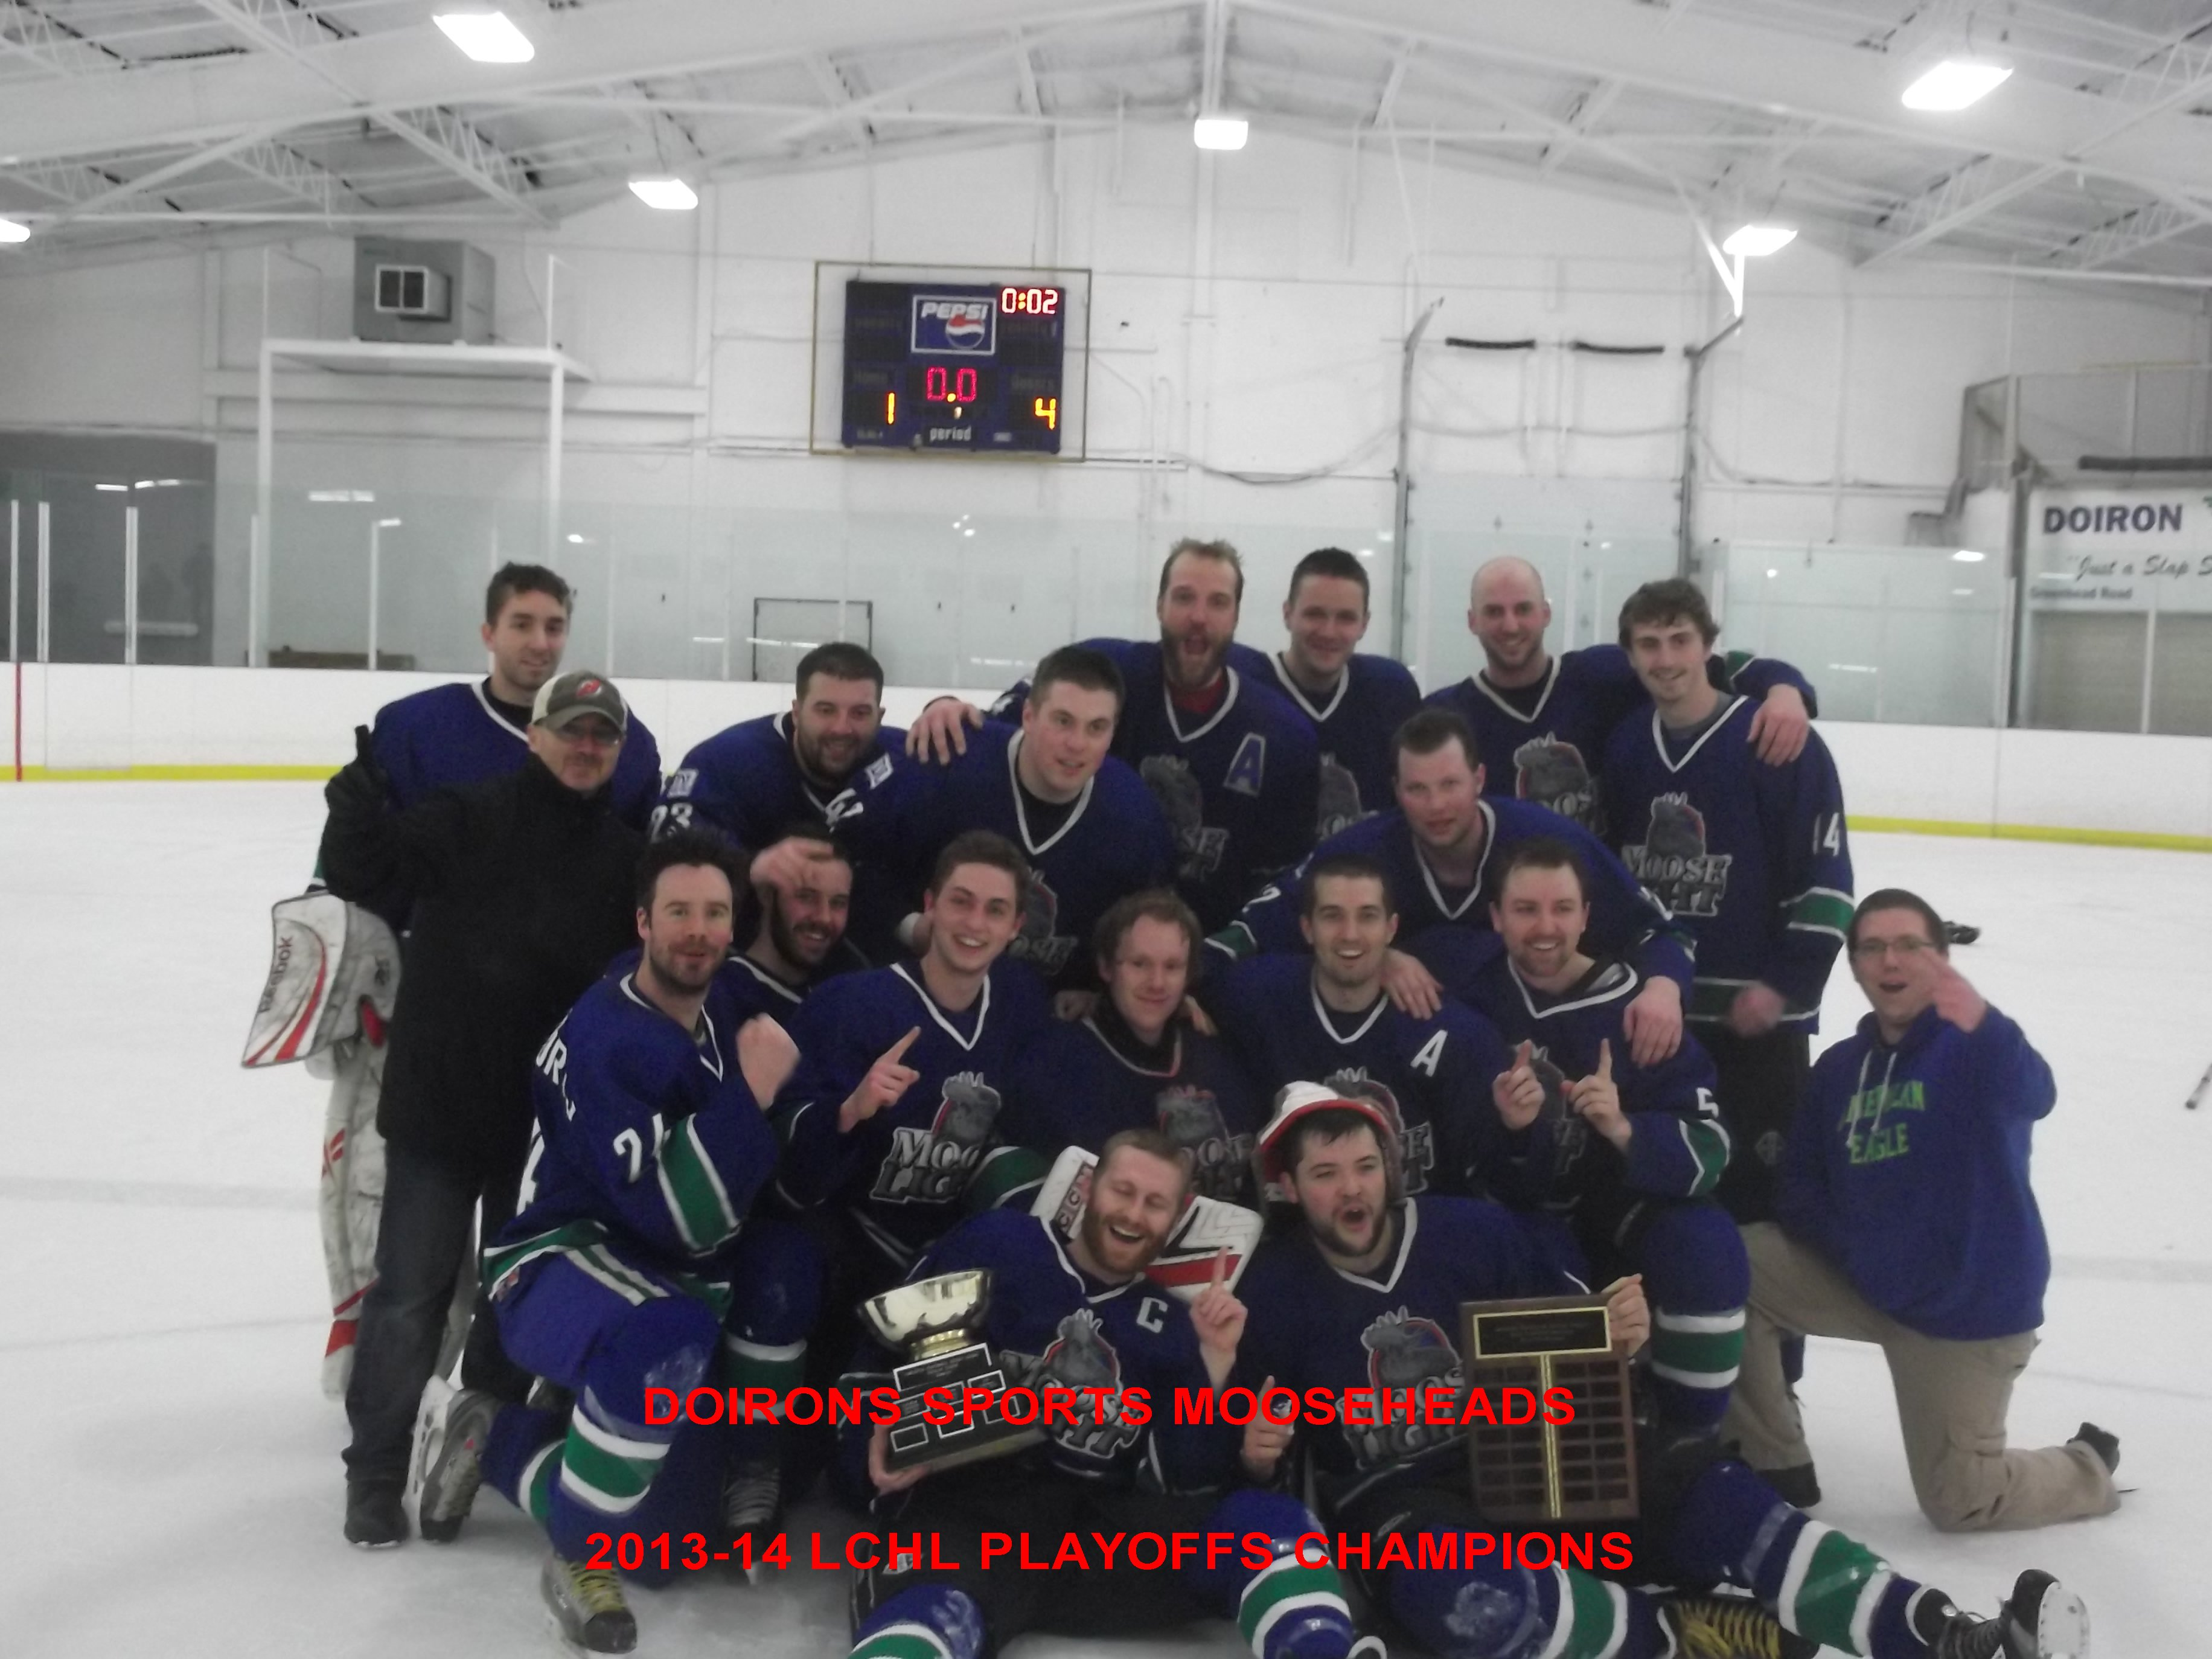 doirons_sports_mooseheads_2014_league_champions.jpg